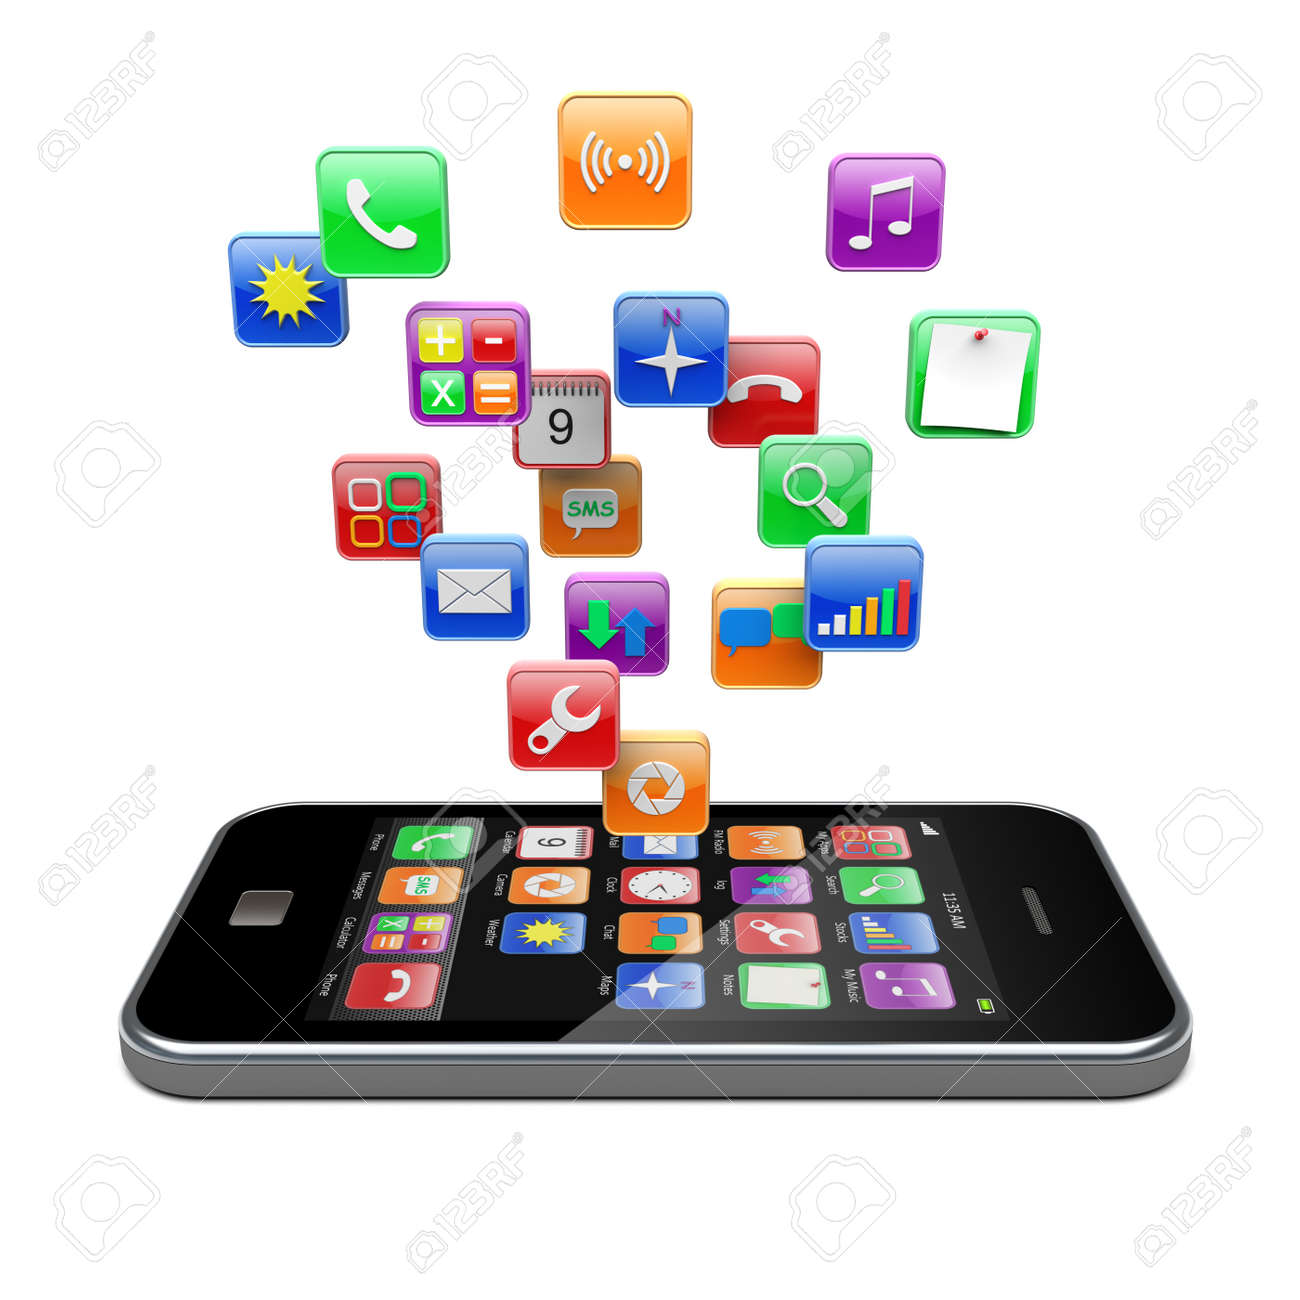 mobile phone with software apps icons 3d image stock photo, picture